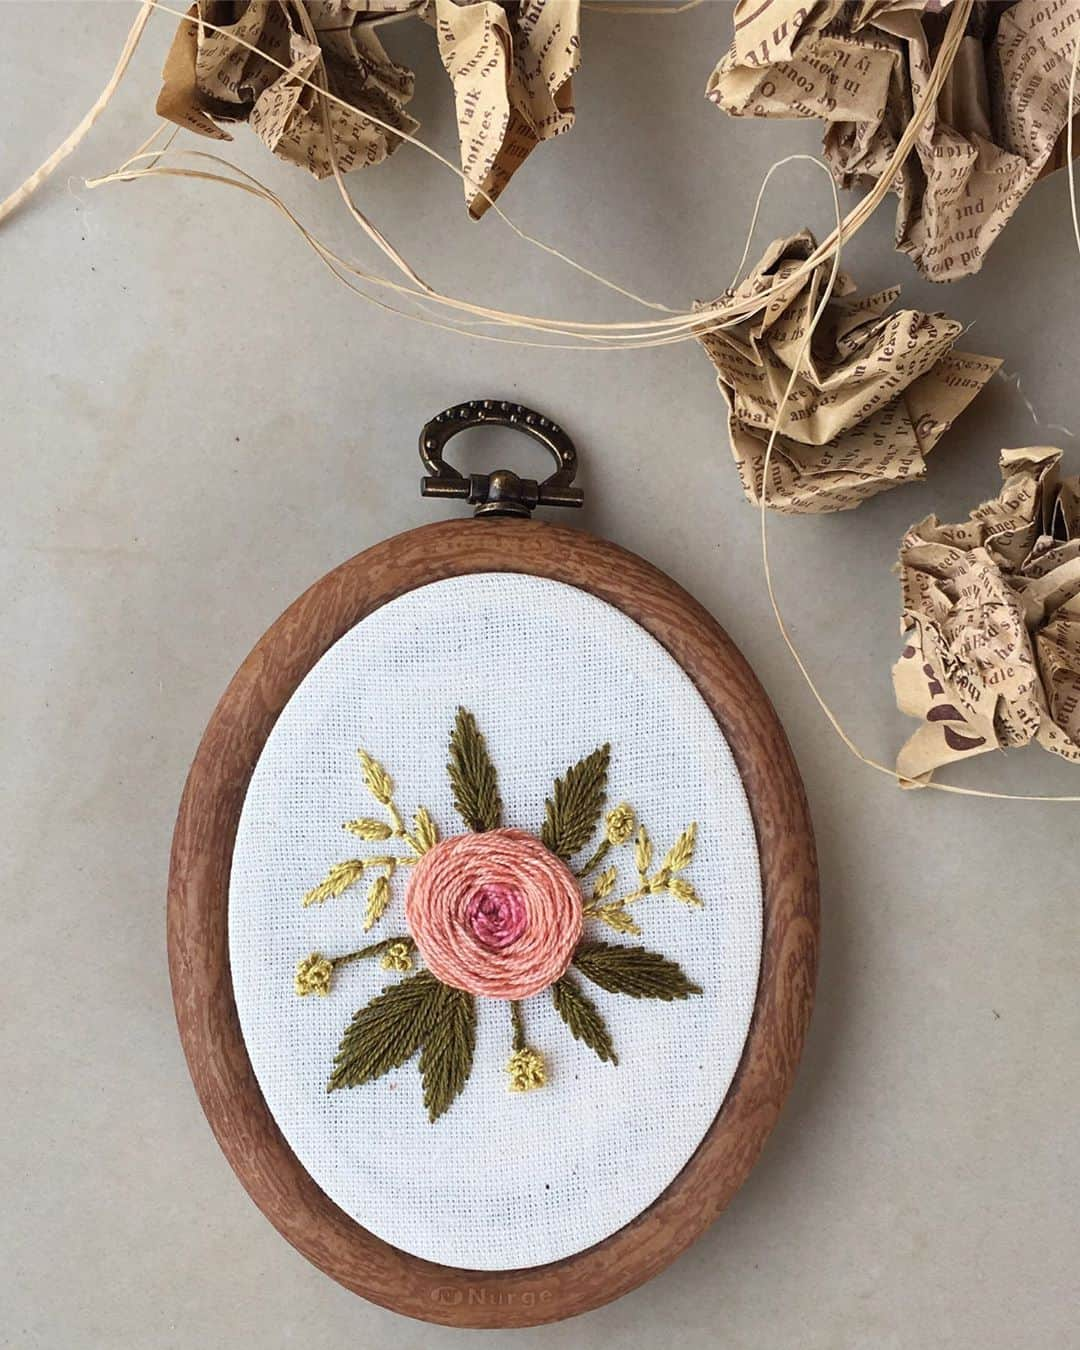 24 Stunning Embroidery Hoop Design Examples